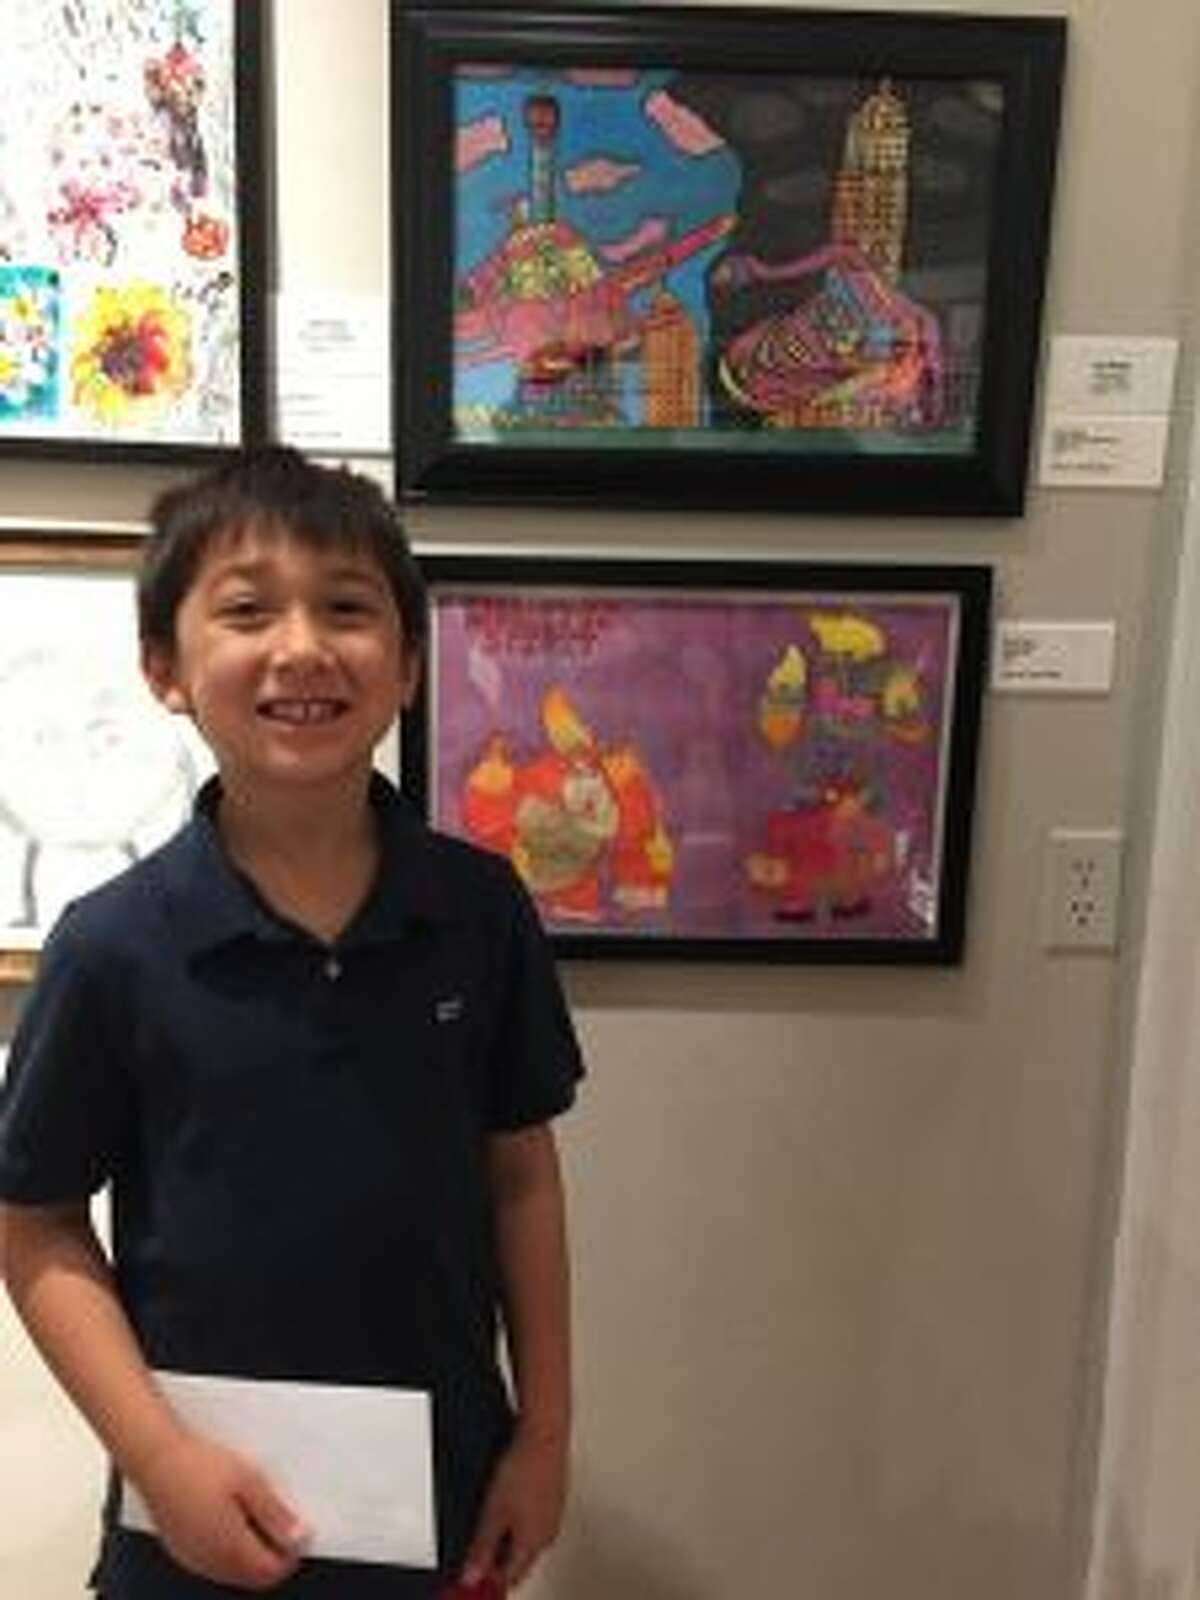 Bruce Elvin of New Canaan won 1st Prize in Painting in the Junior Category for Flying Cars with My Brother.